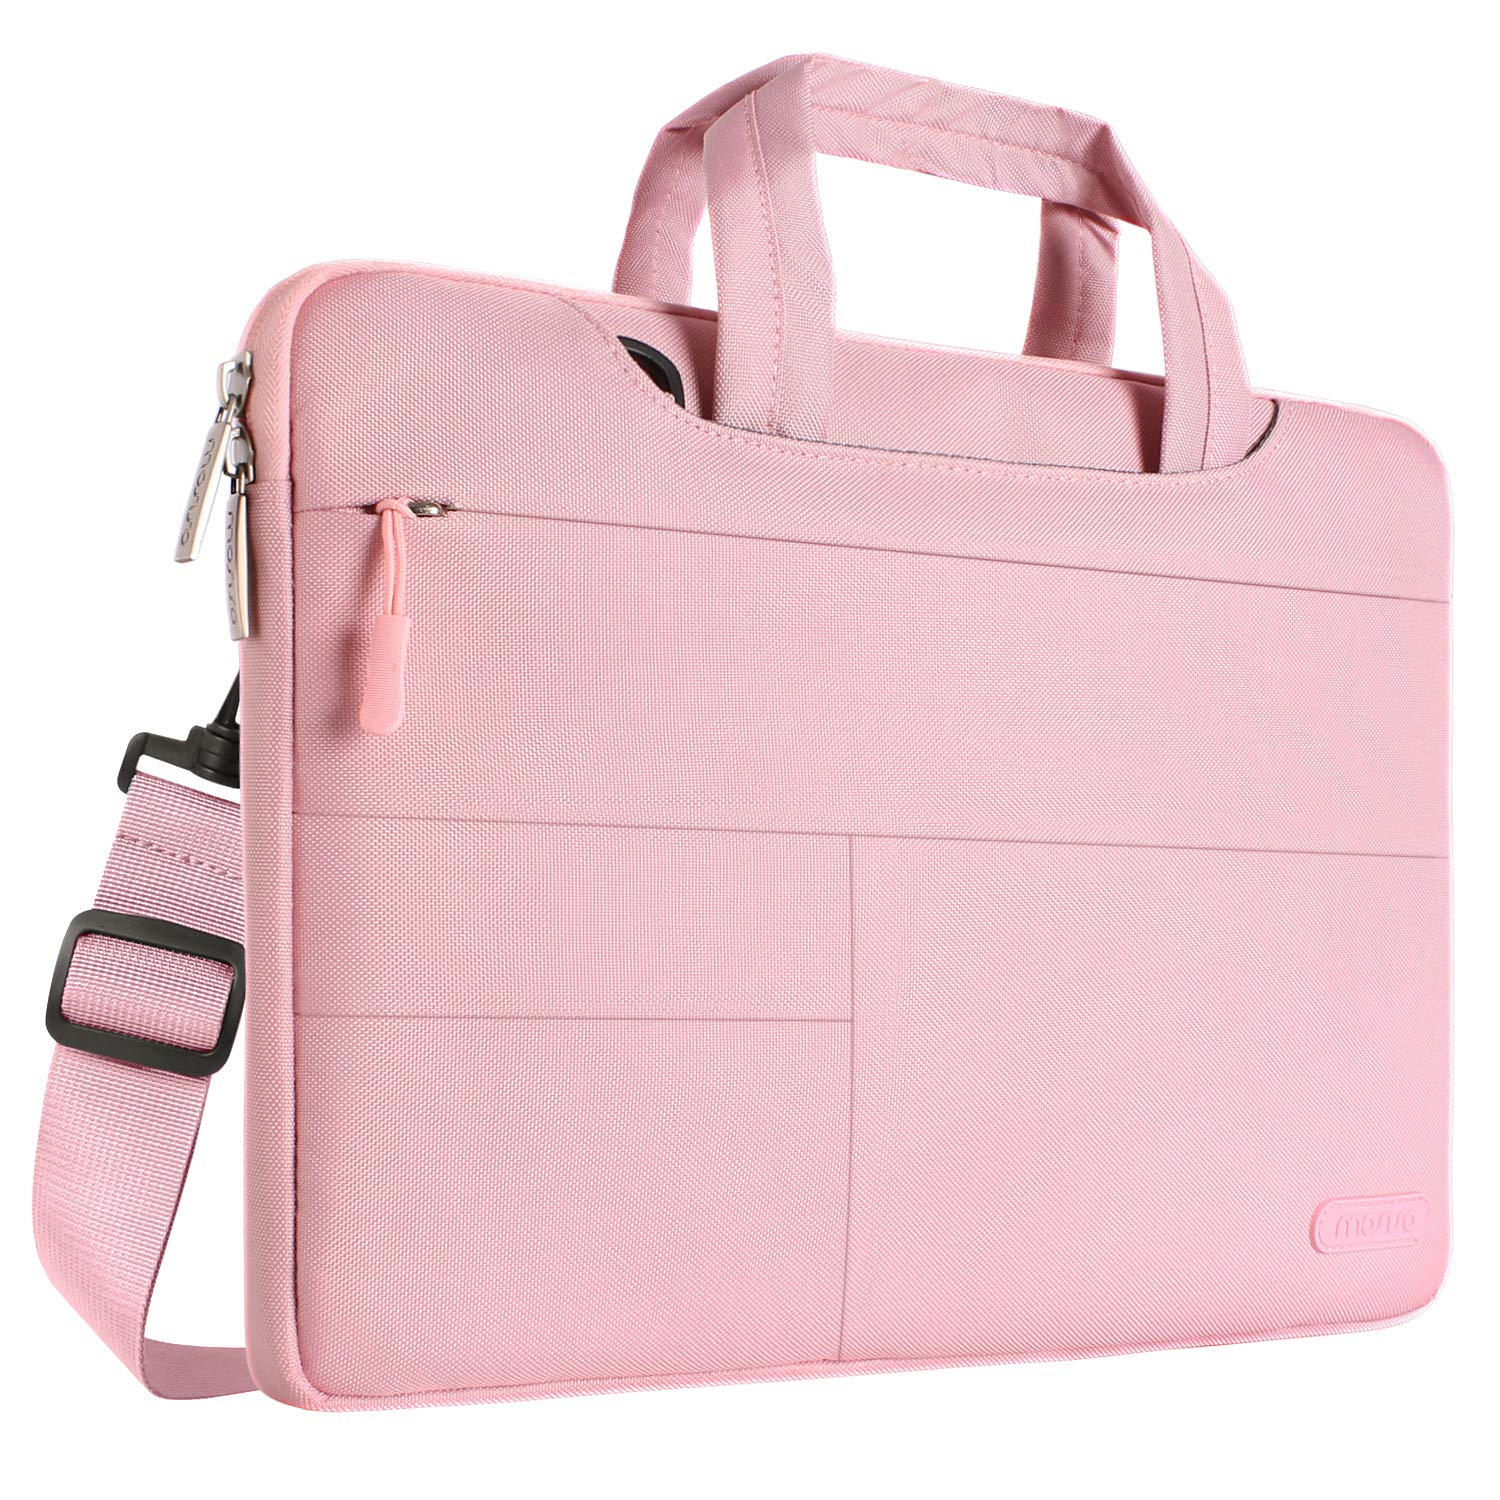 MOSISO Laptop Shoulder Bag Compatible 15-15.6 Inch 2018 2017 2016 MacBook Pro with Touch Bar A1990/A1707, MacBook Pro, Also Compatible 14 Inch Notebook, Polyester Briefcase with Storage Pockets, Pink